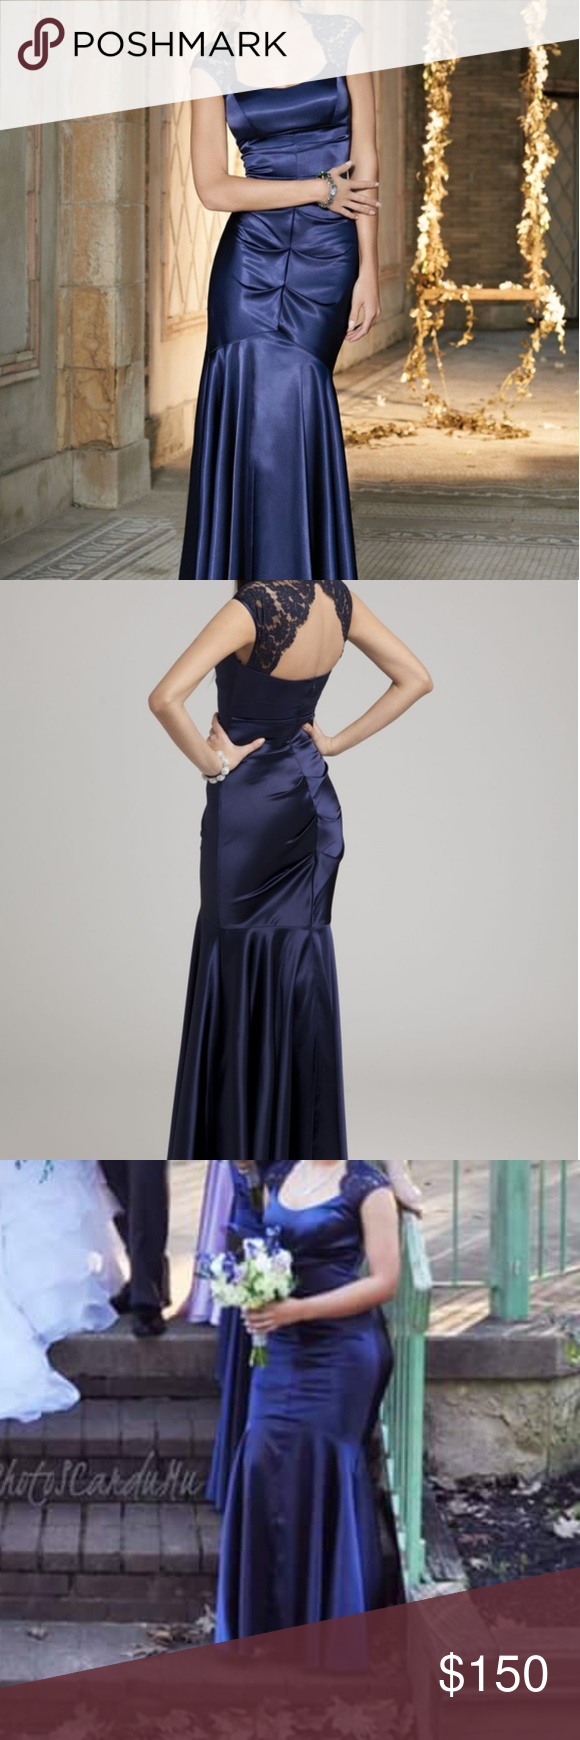 Stretch satin long dress with open lace back prom camilla strech